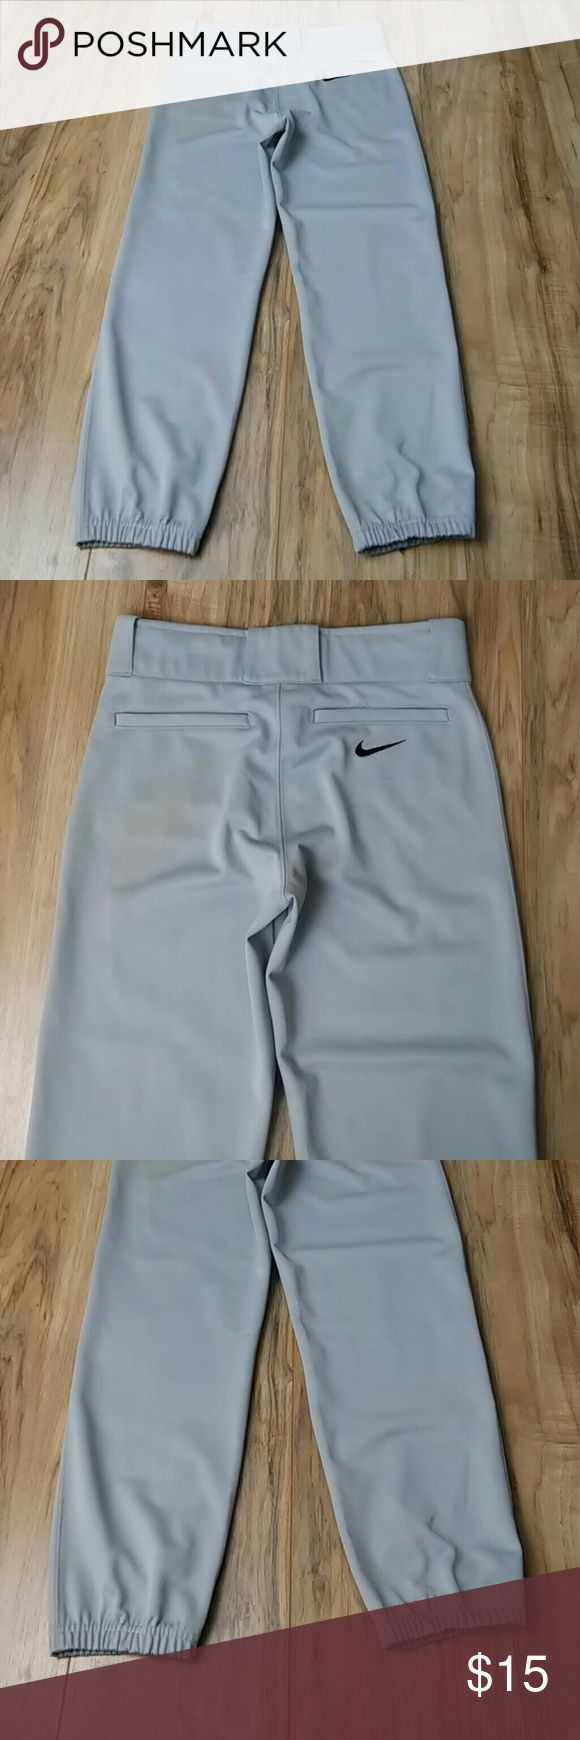 Nike Baseball pants youth Large Does have some stains and have been played in but lots of bases left to slide in to with them. They are a size large Nike Bottoms Sweatpants & Joggers